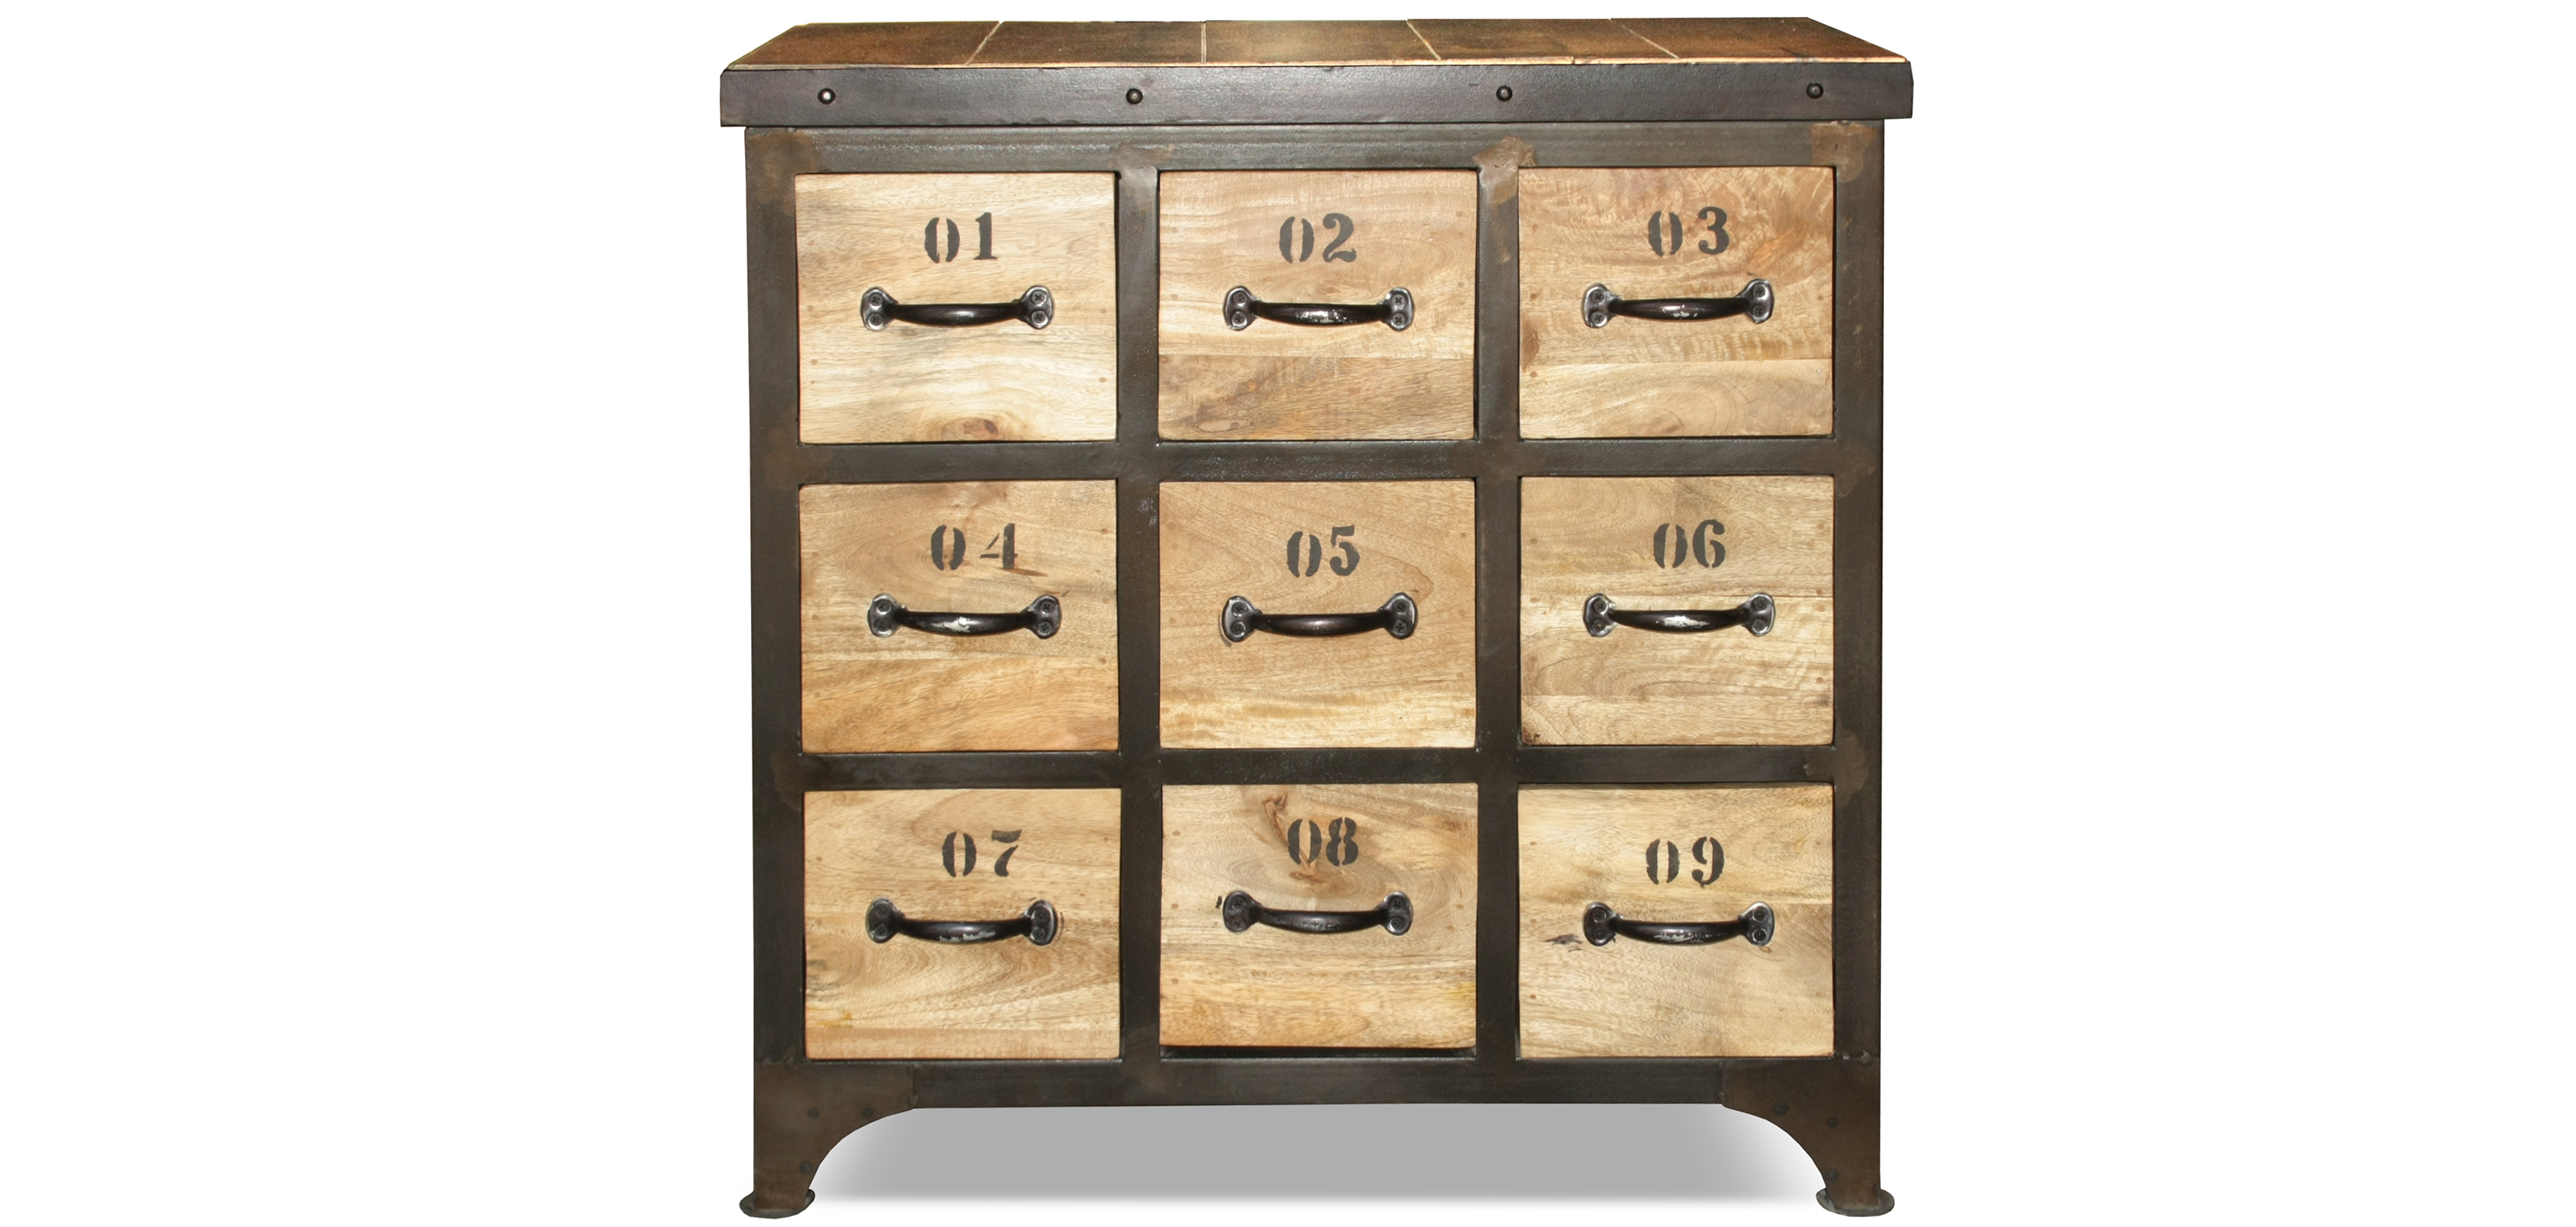 commode vintage industriel bois 9 tiroirs pas cher. Black Bedroom Furniture Sets. Home Design Ideas